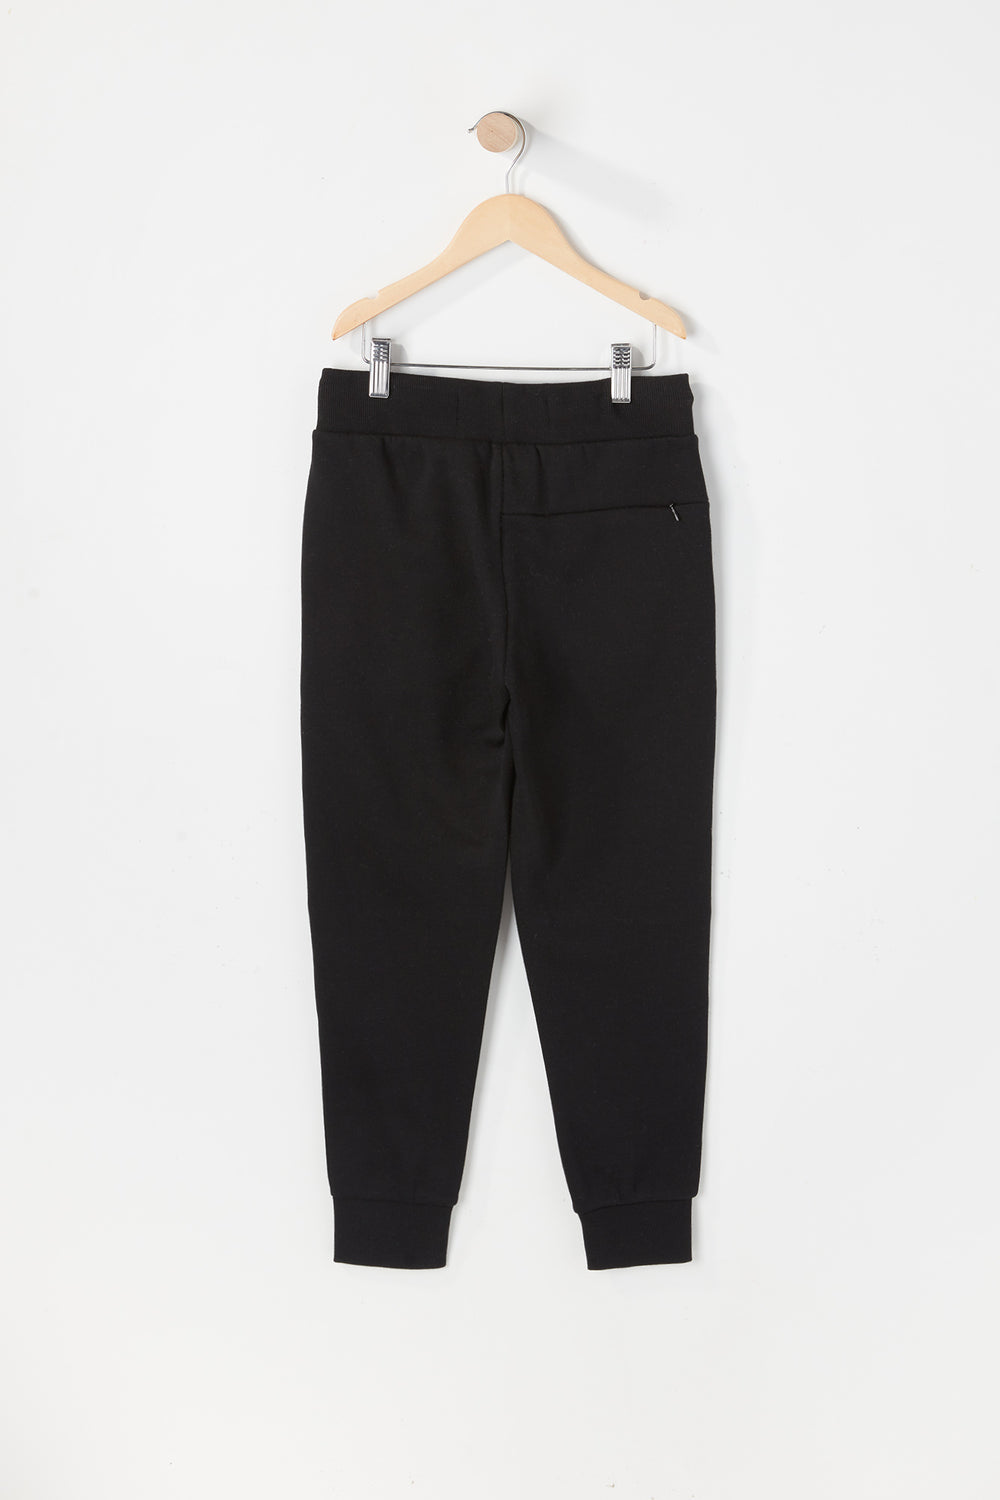 West49 Youth Solid Moto Jogger Black